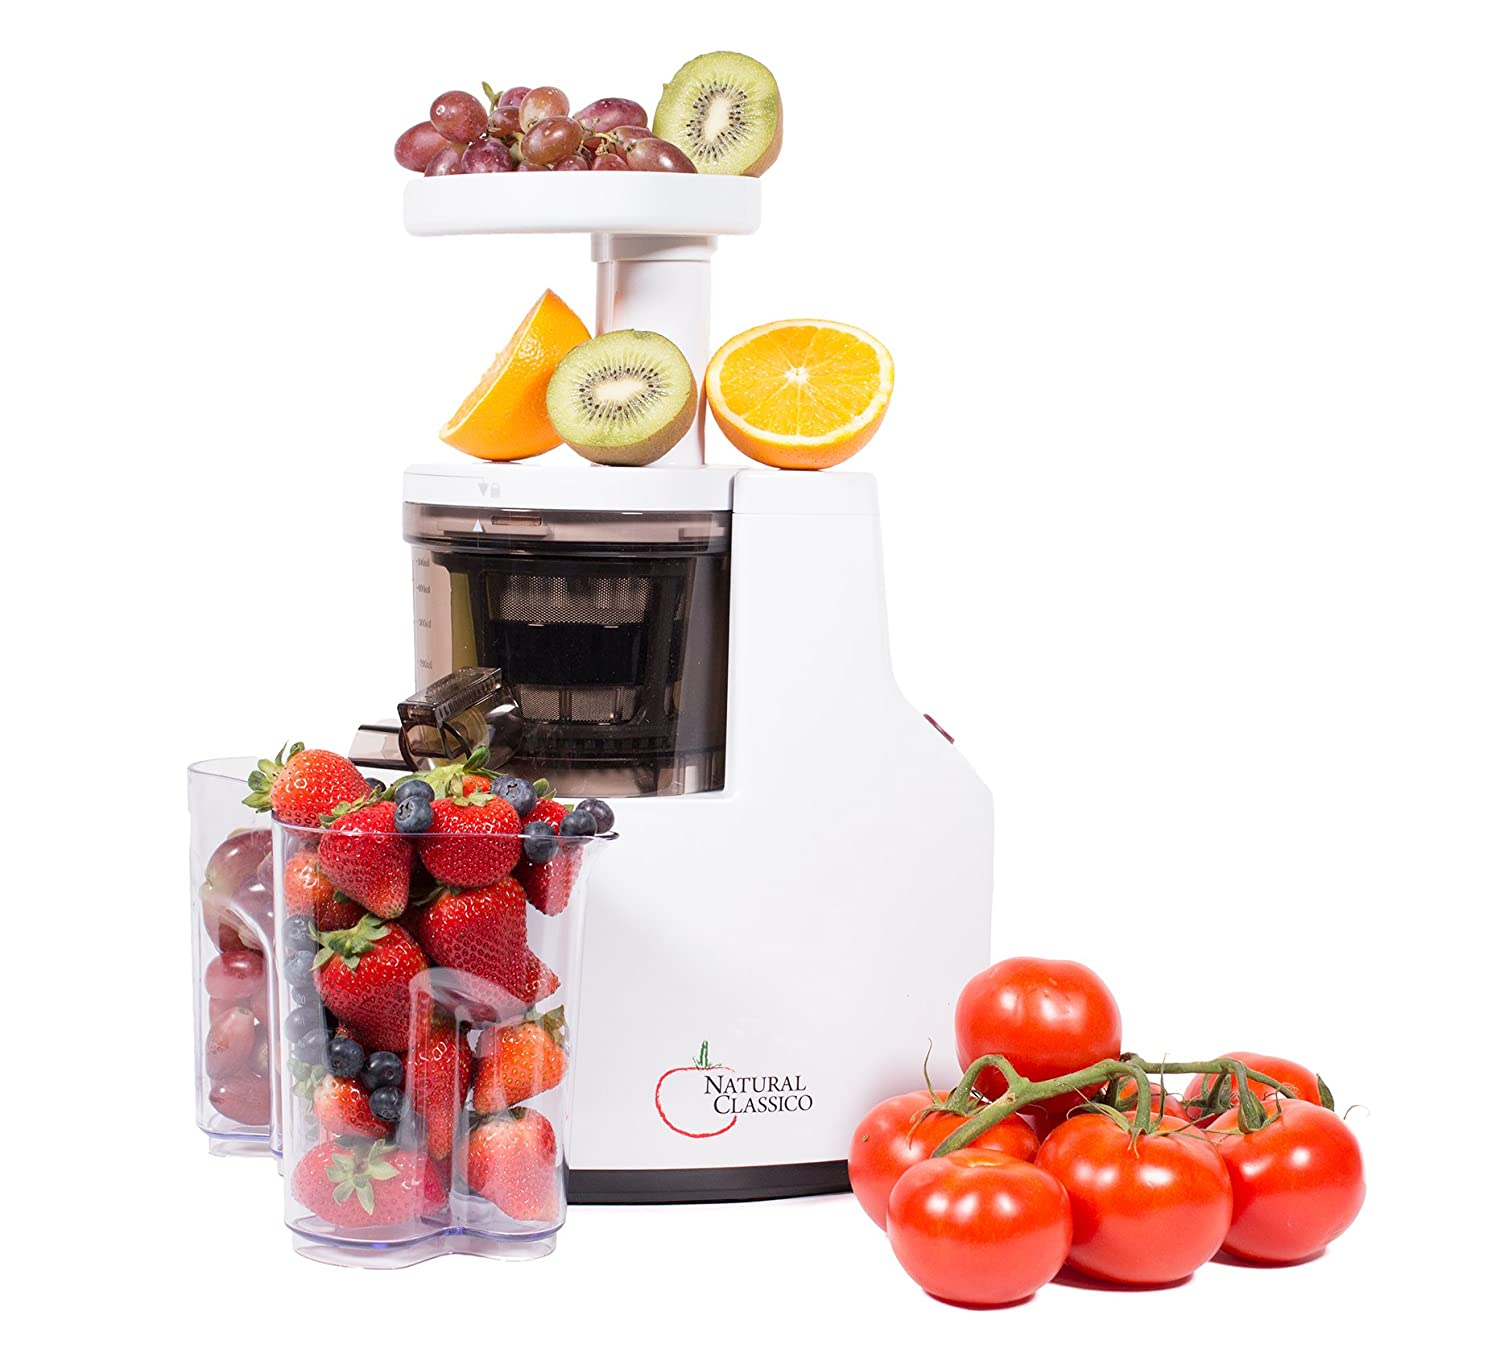 Nutritional Center Slow Speed Masticating Juicer by Natural Classico Fresh Healthy Fruit and Vegetable Juice at 85 Revolutions Per Minute JE120-04E00